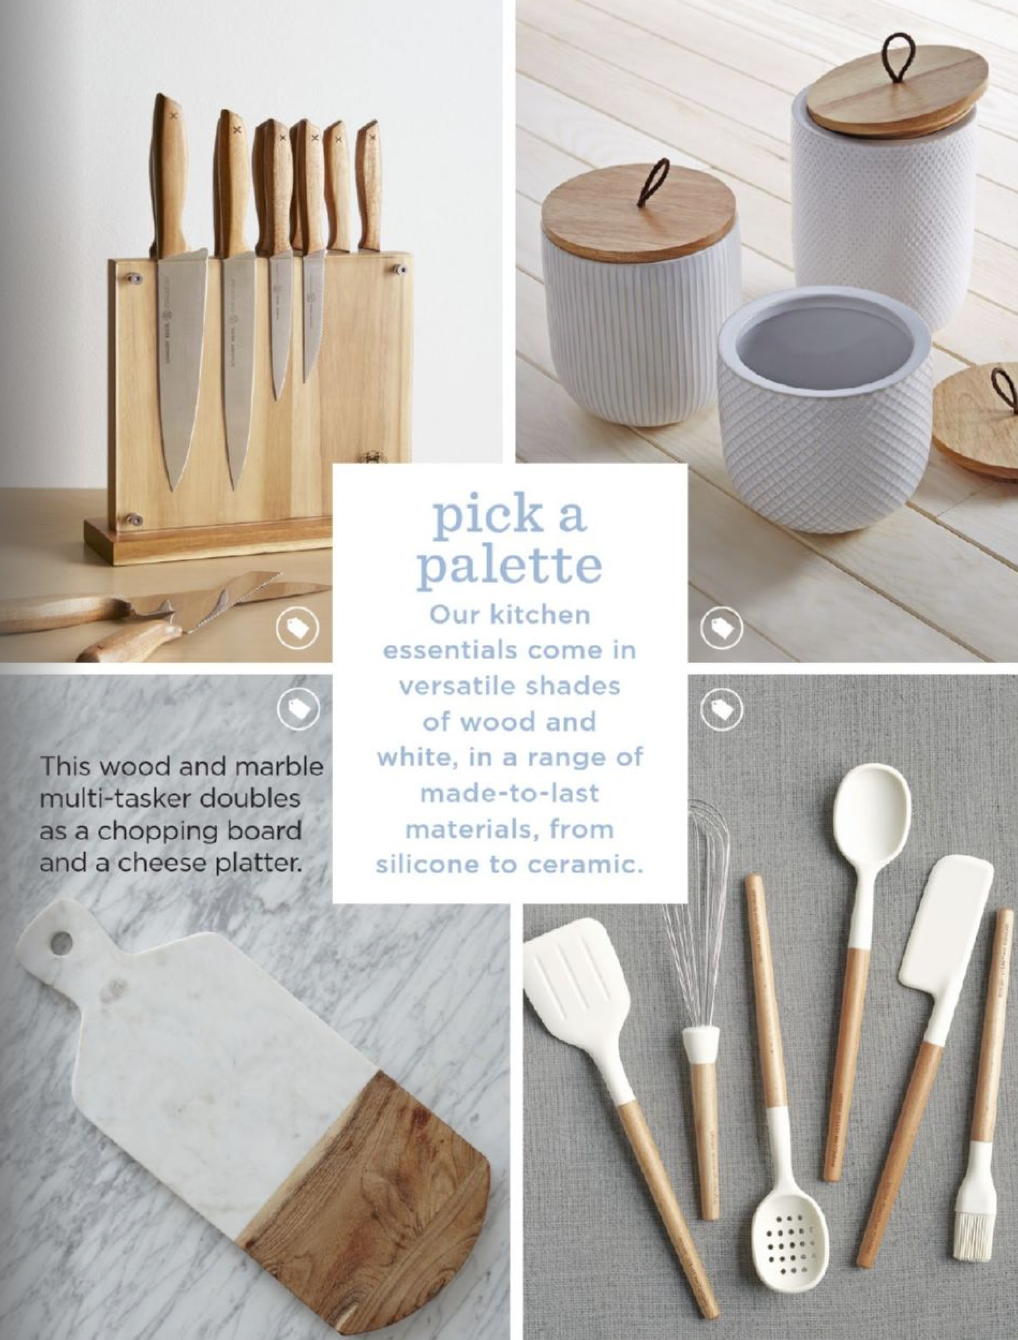 Pin by Camila Amortegui on - KITCHEN TOOLS -   Pinterest